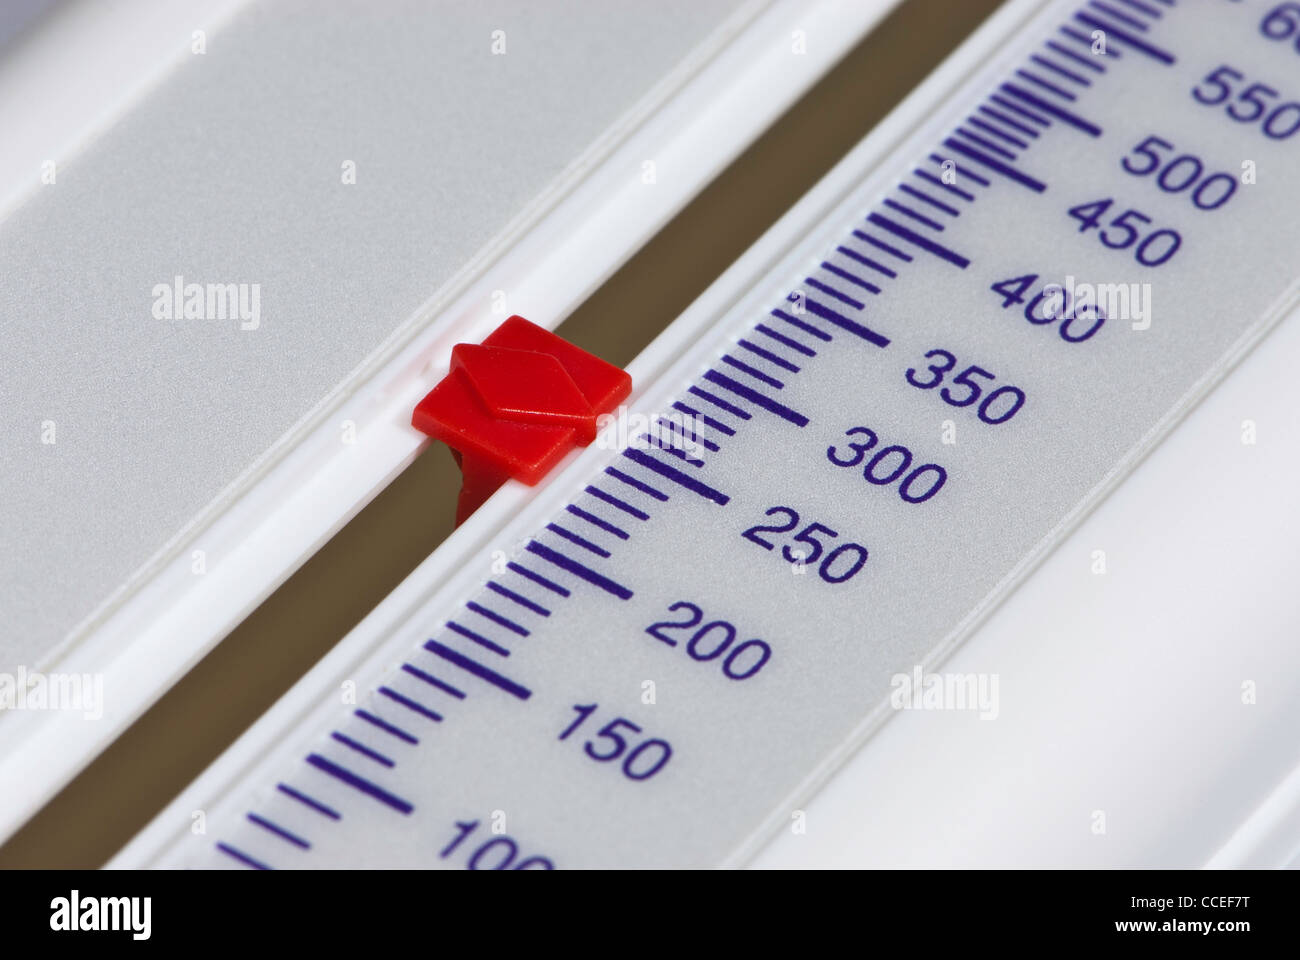 Close up of scale on a Peak flow meter at 250. - Stock Image